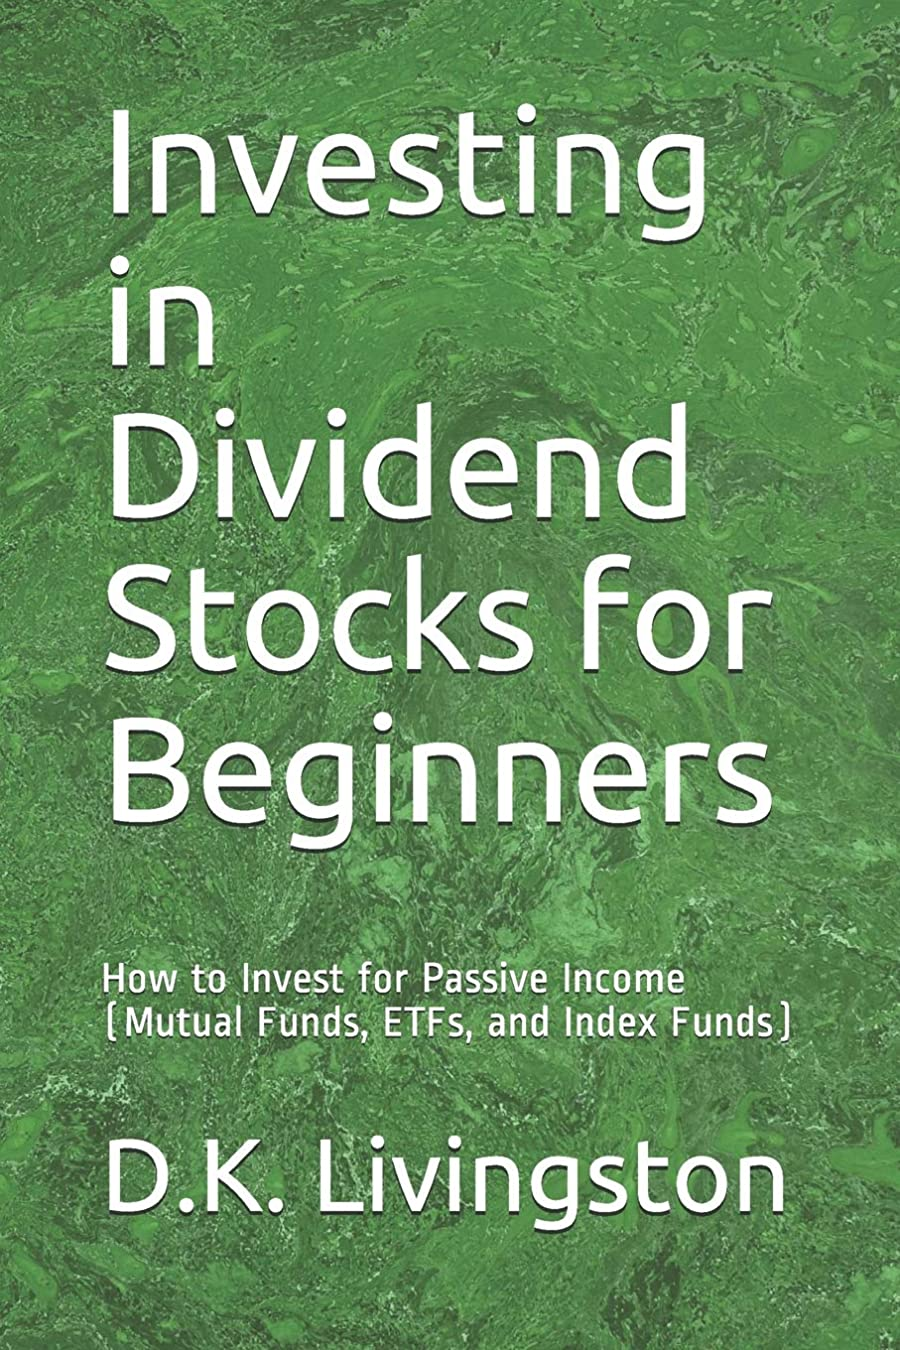 幸運な過去謝罪するInvesting in Dividend Stocks for Beginners: How to Invest for Passive Income (Mutual Funds, ETFs, and Index Funds)